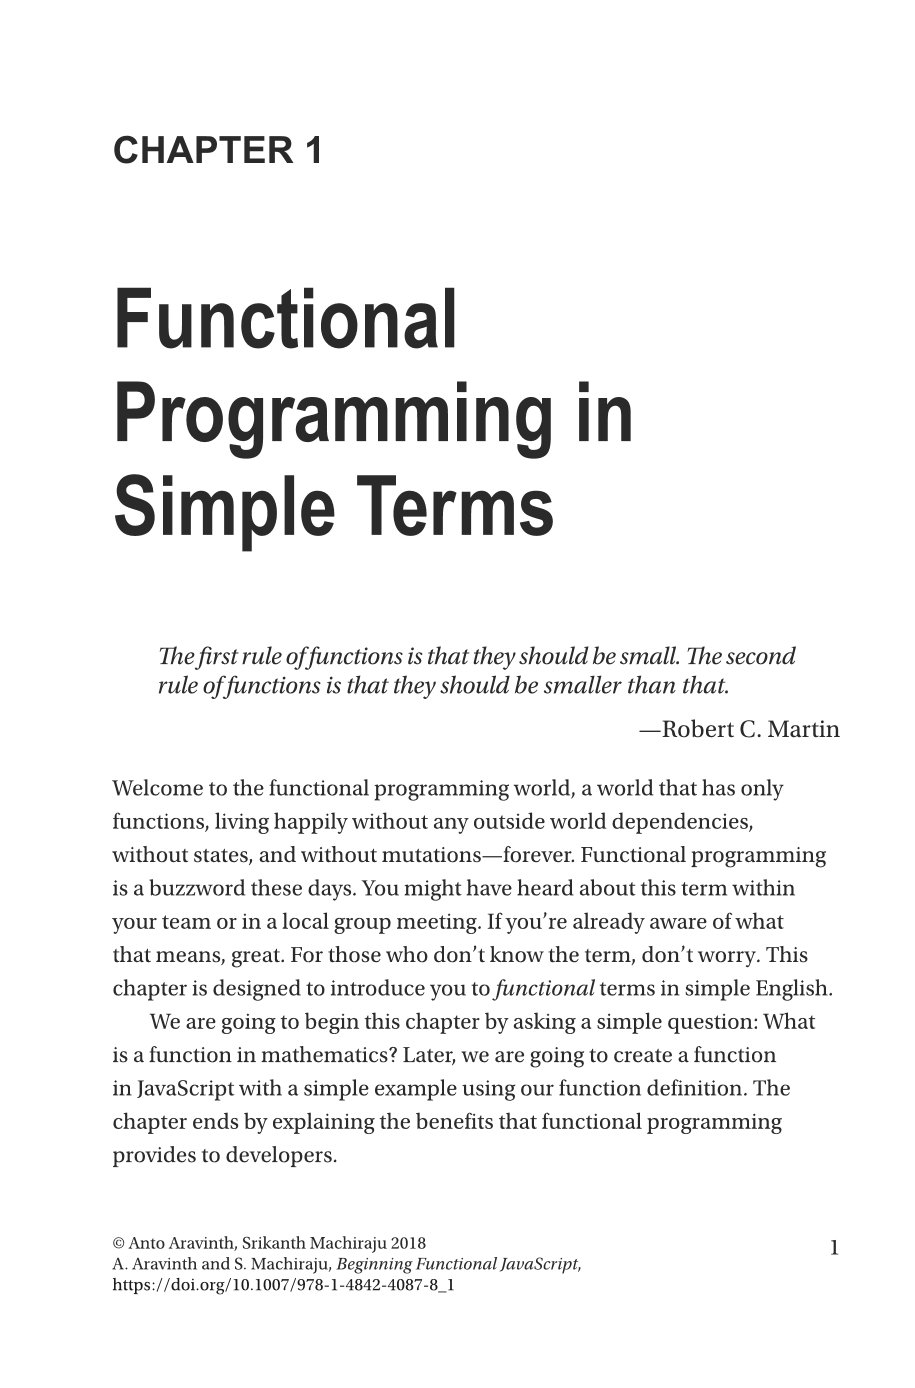 Beginning Functional JavaScript: Uncover the Concepts of Functional Programming with EcmaScript 8-preview-1